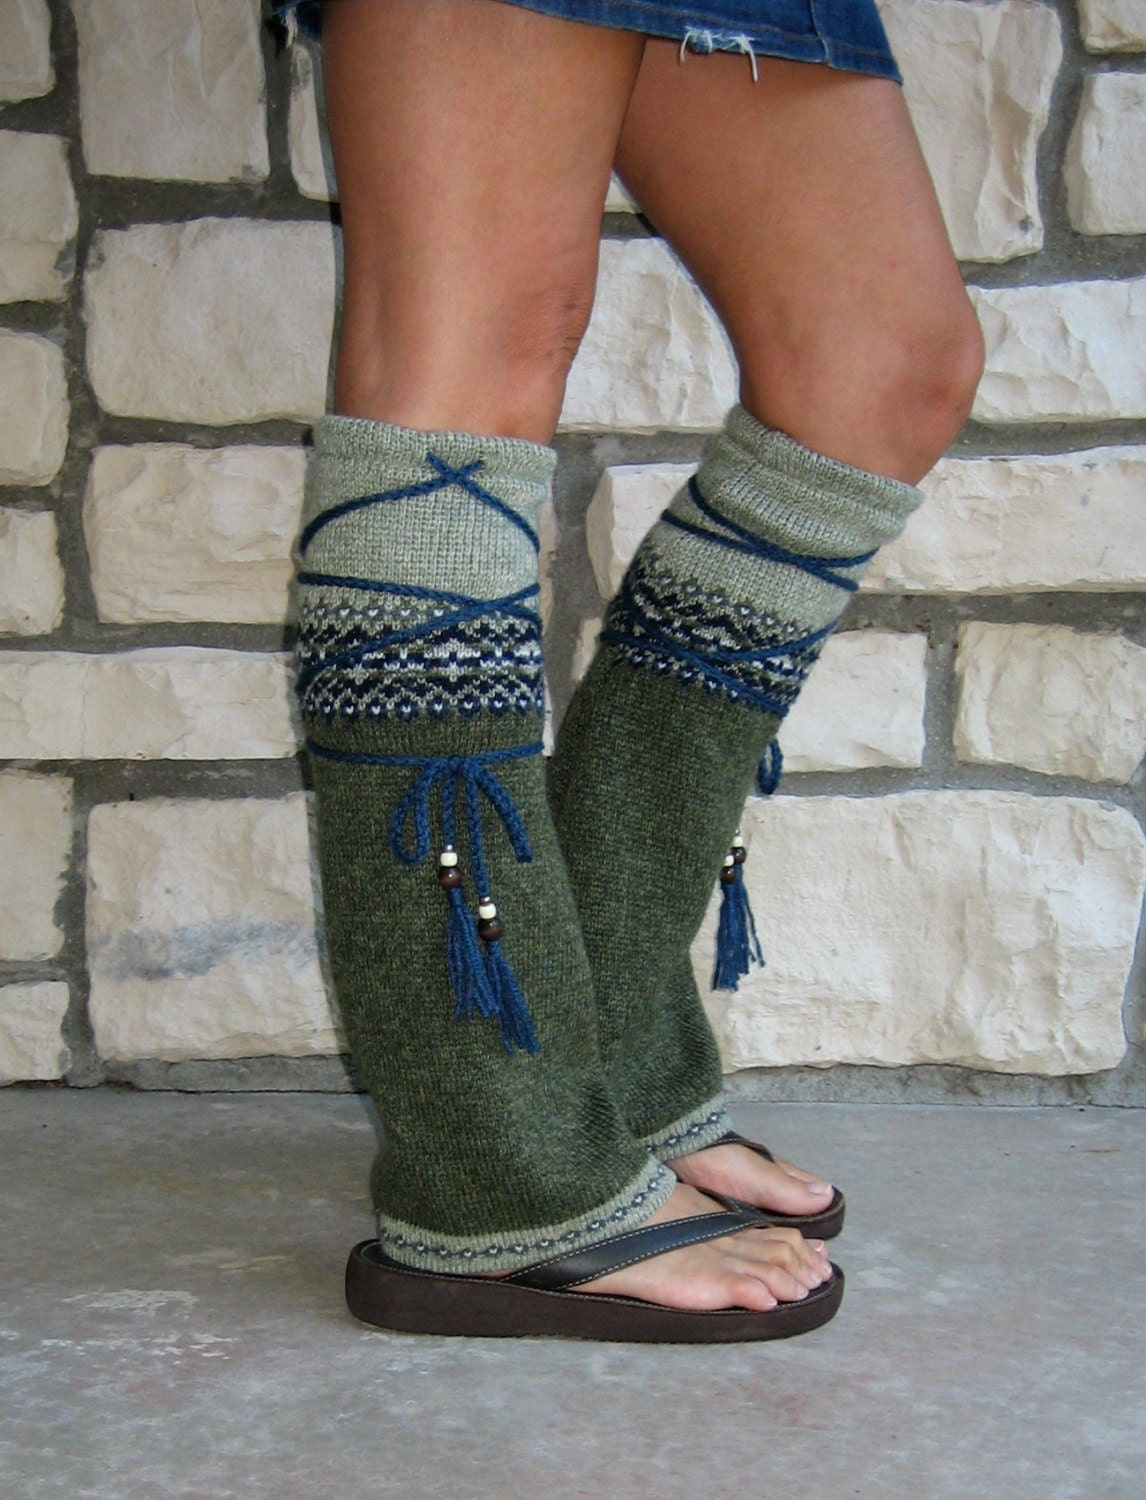 Tribal Flair' Leg Warmers Hippie Clothing Boho Clothing